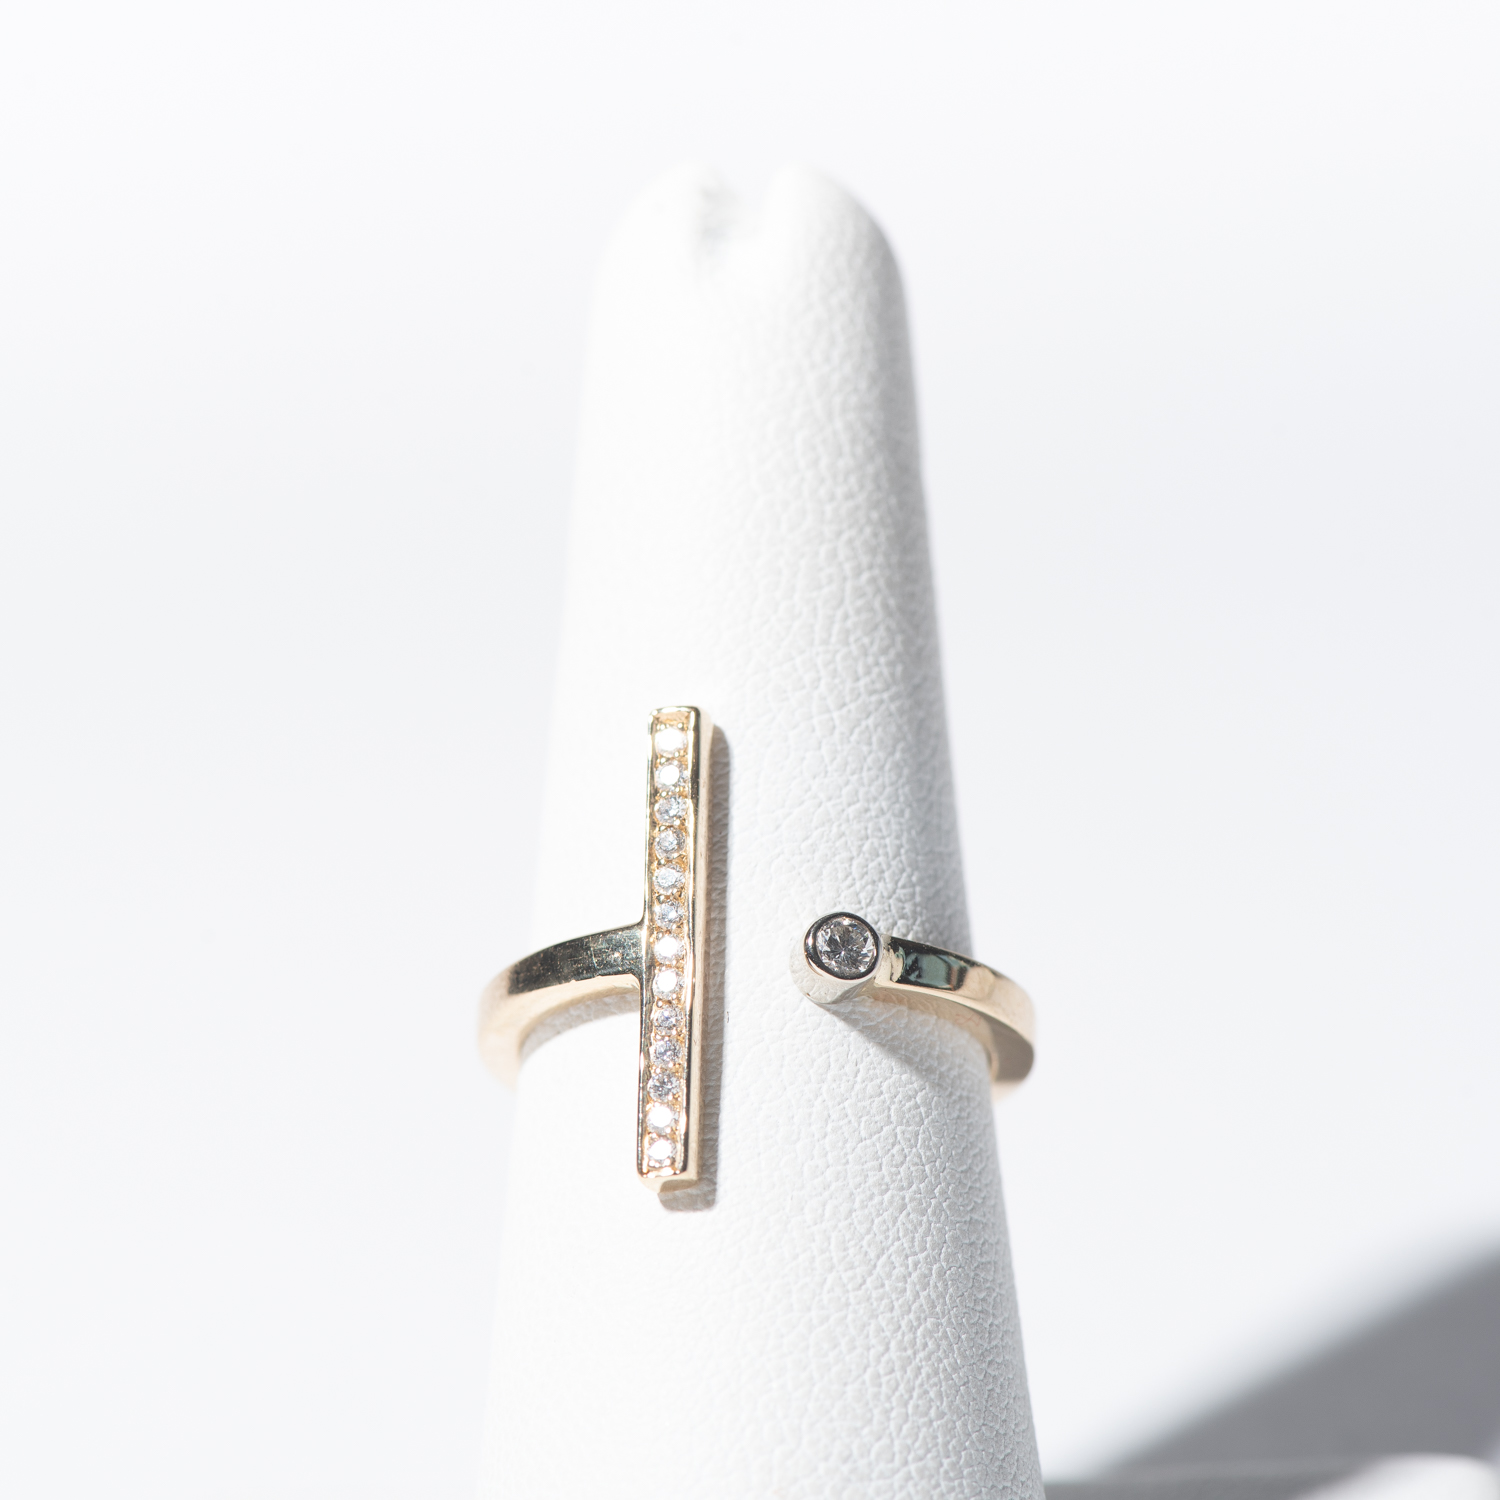 Design Three. - 18K Yellow Gold Dot + Bar Ring